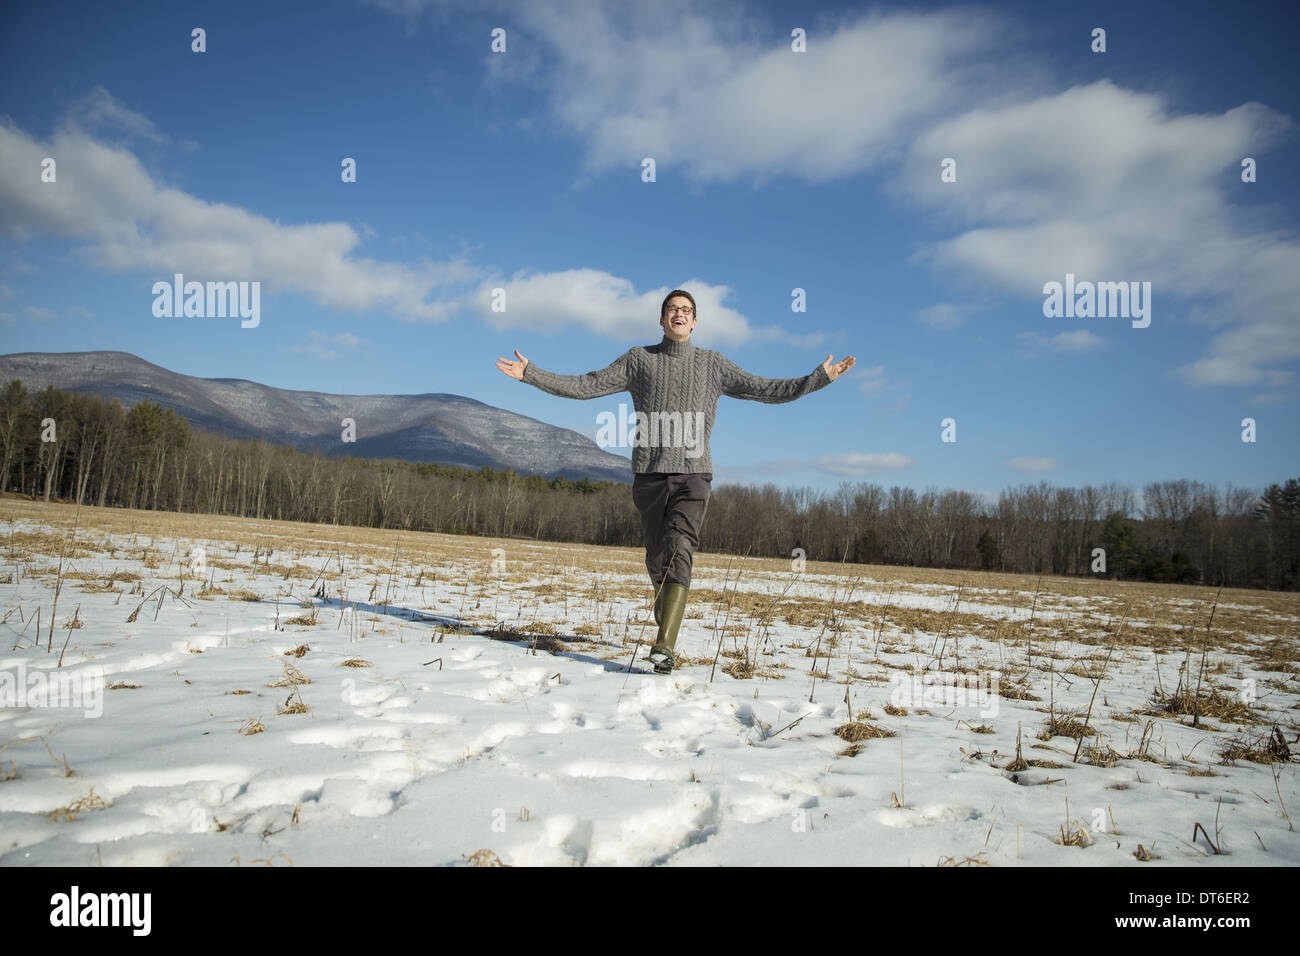 A man in a cable knit jumper and muck boots standing with his arms stretched out, in a snowy rural landscape. - Stock Image